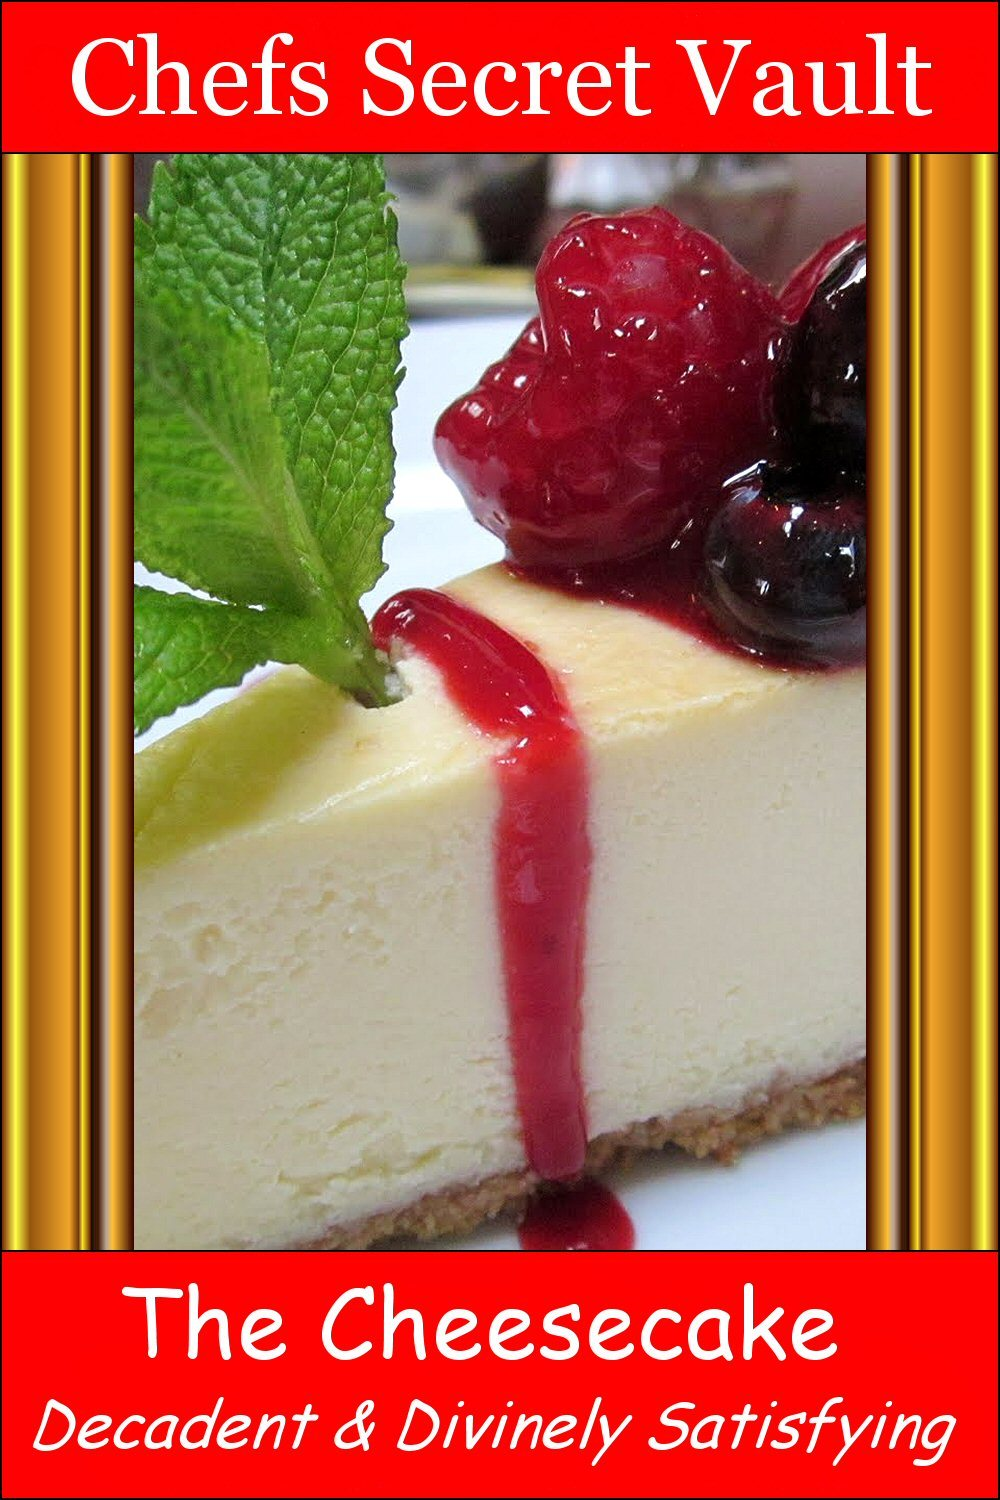 The Cheesecake: Decadent and Divinely Satisfying By: Chefs Secret Vault